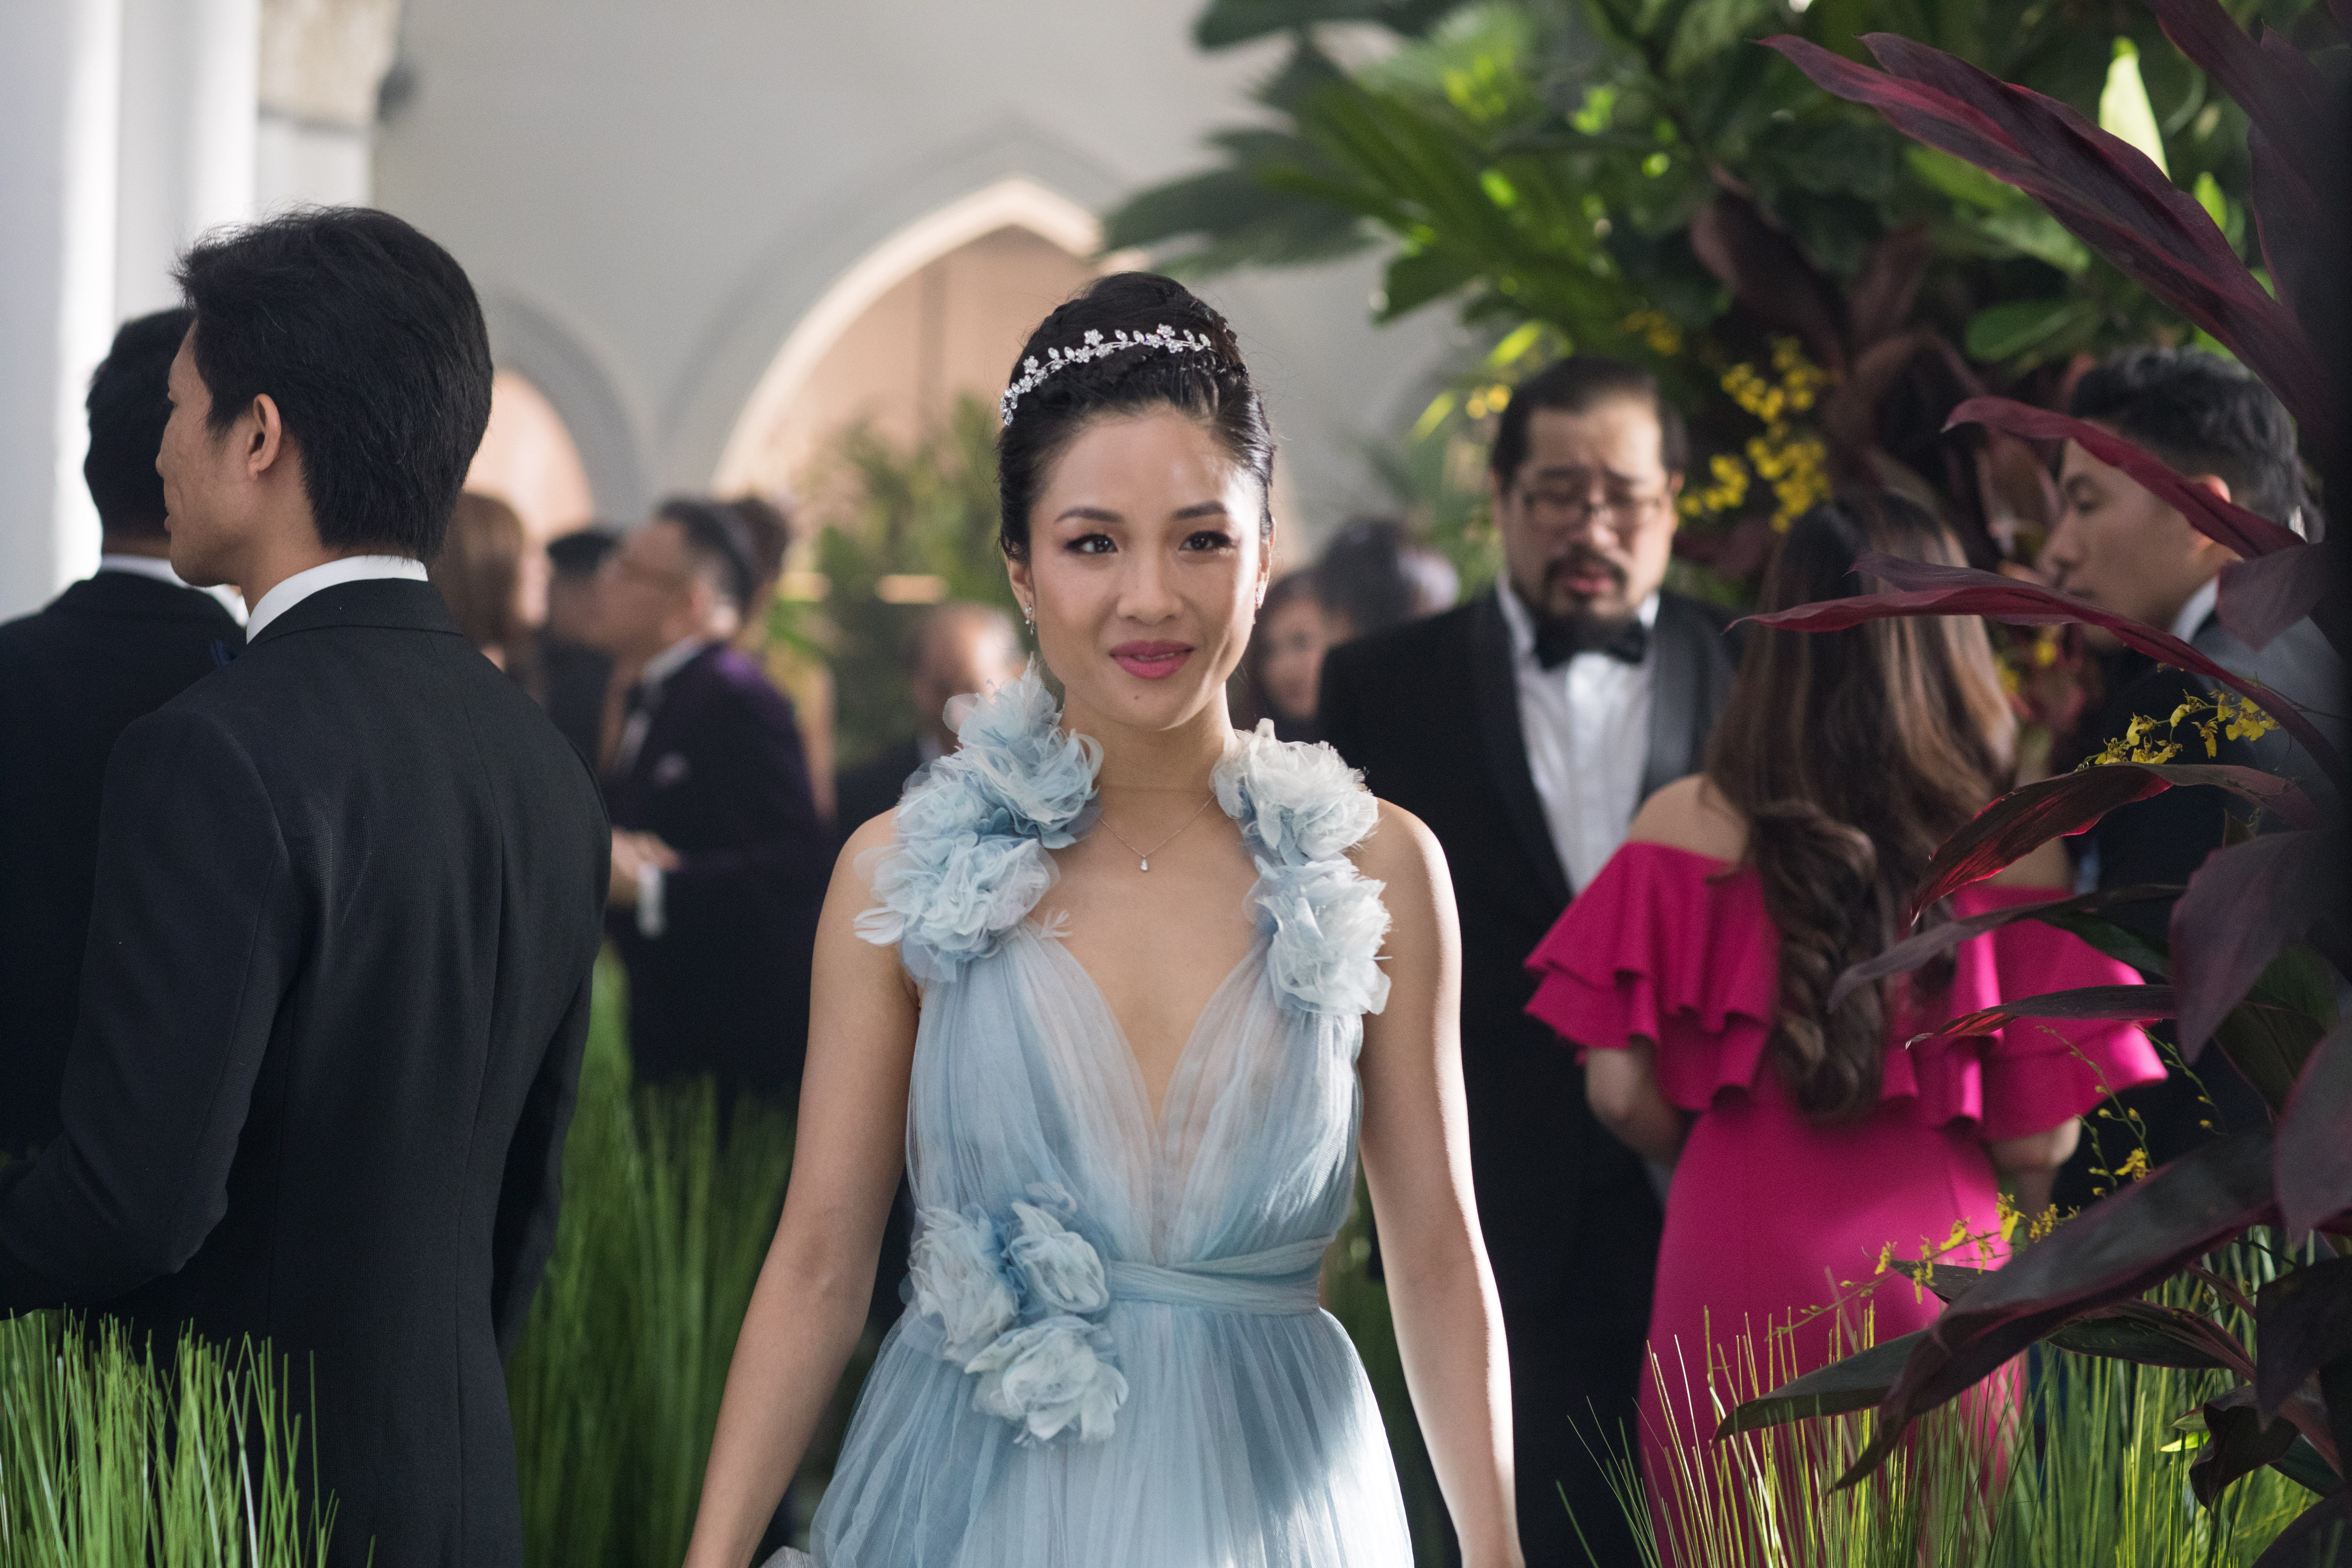 Opinion: Why 'Crazy Rich Asians' made me cry